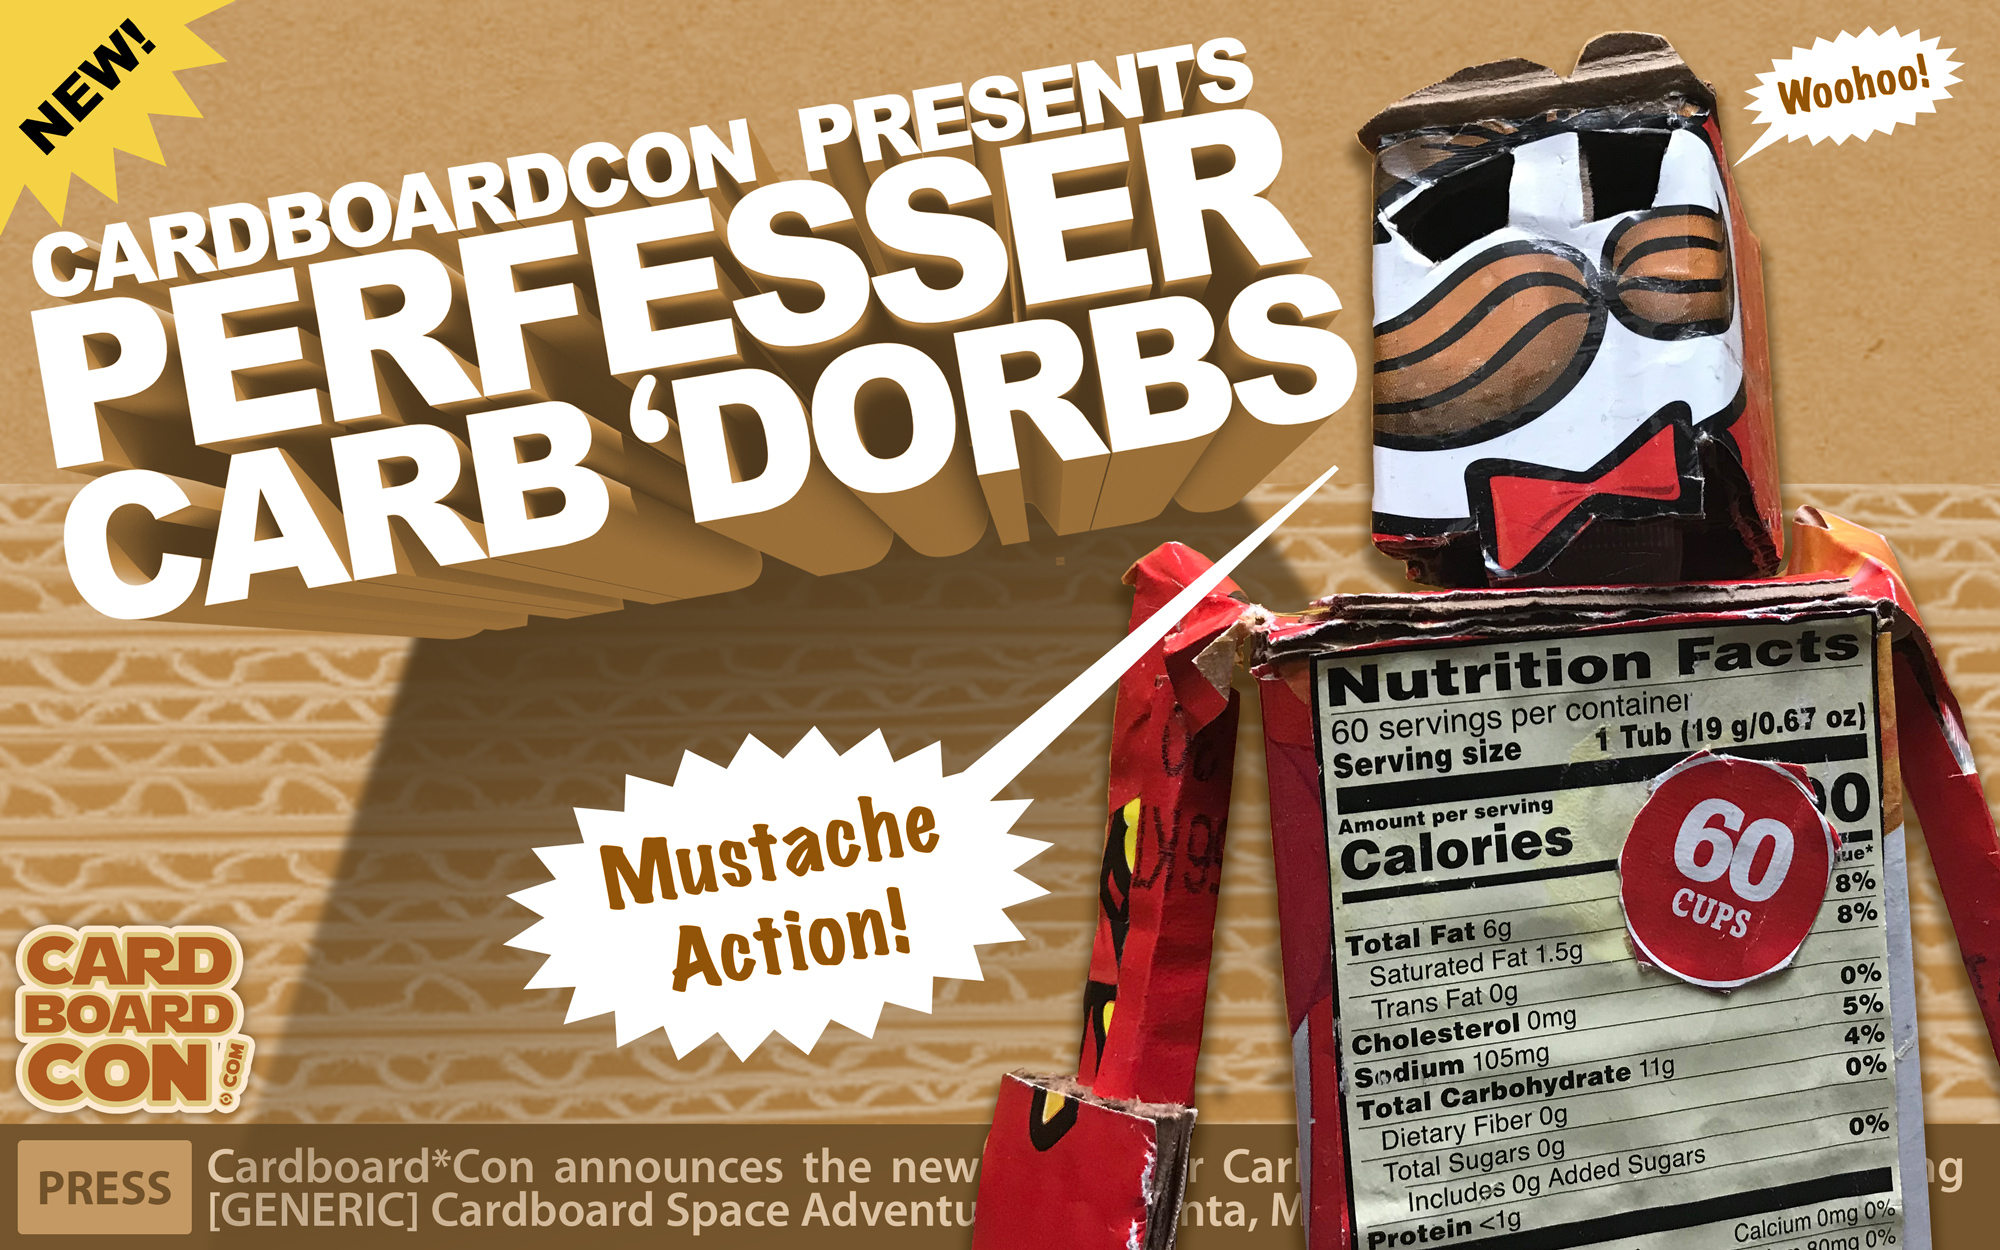 Perfesser Carb'dorbs action doll